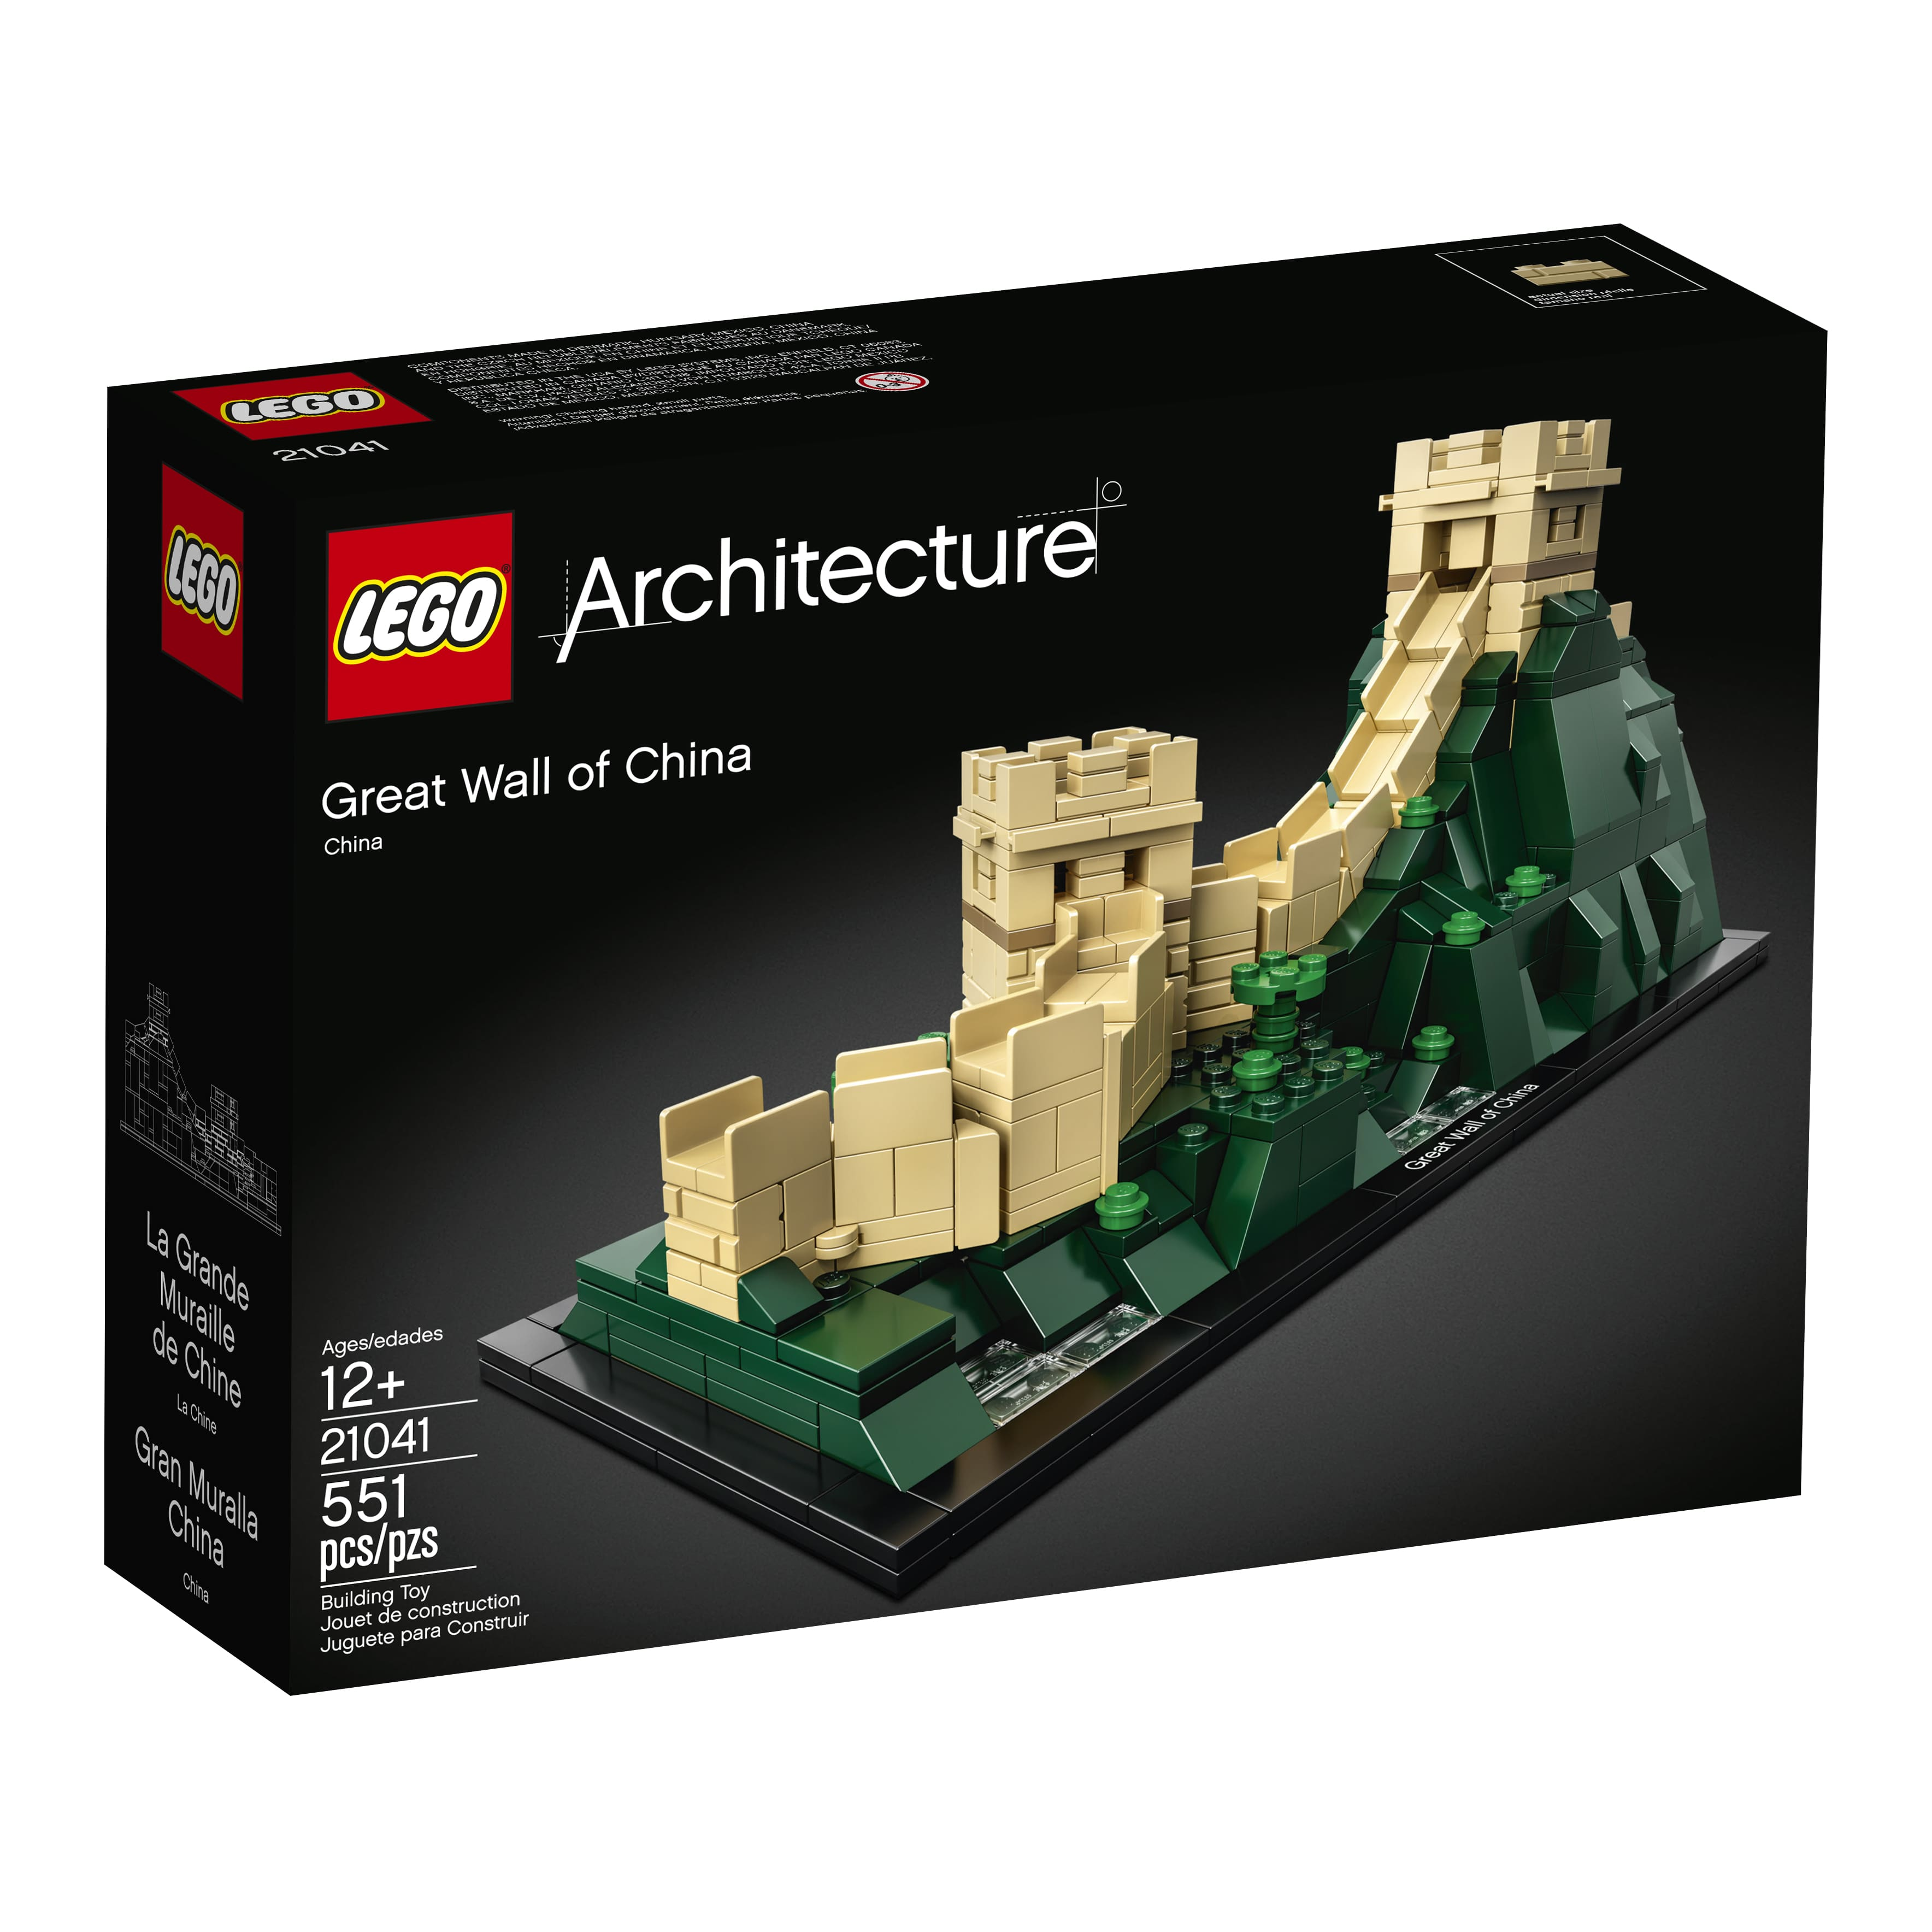 LEGO Architecture The Great Wall of China 21041 $29.99